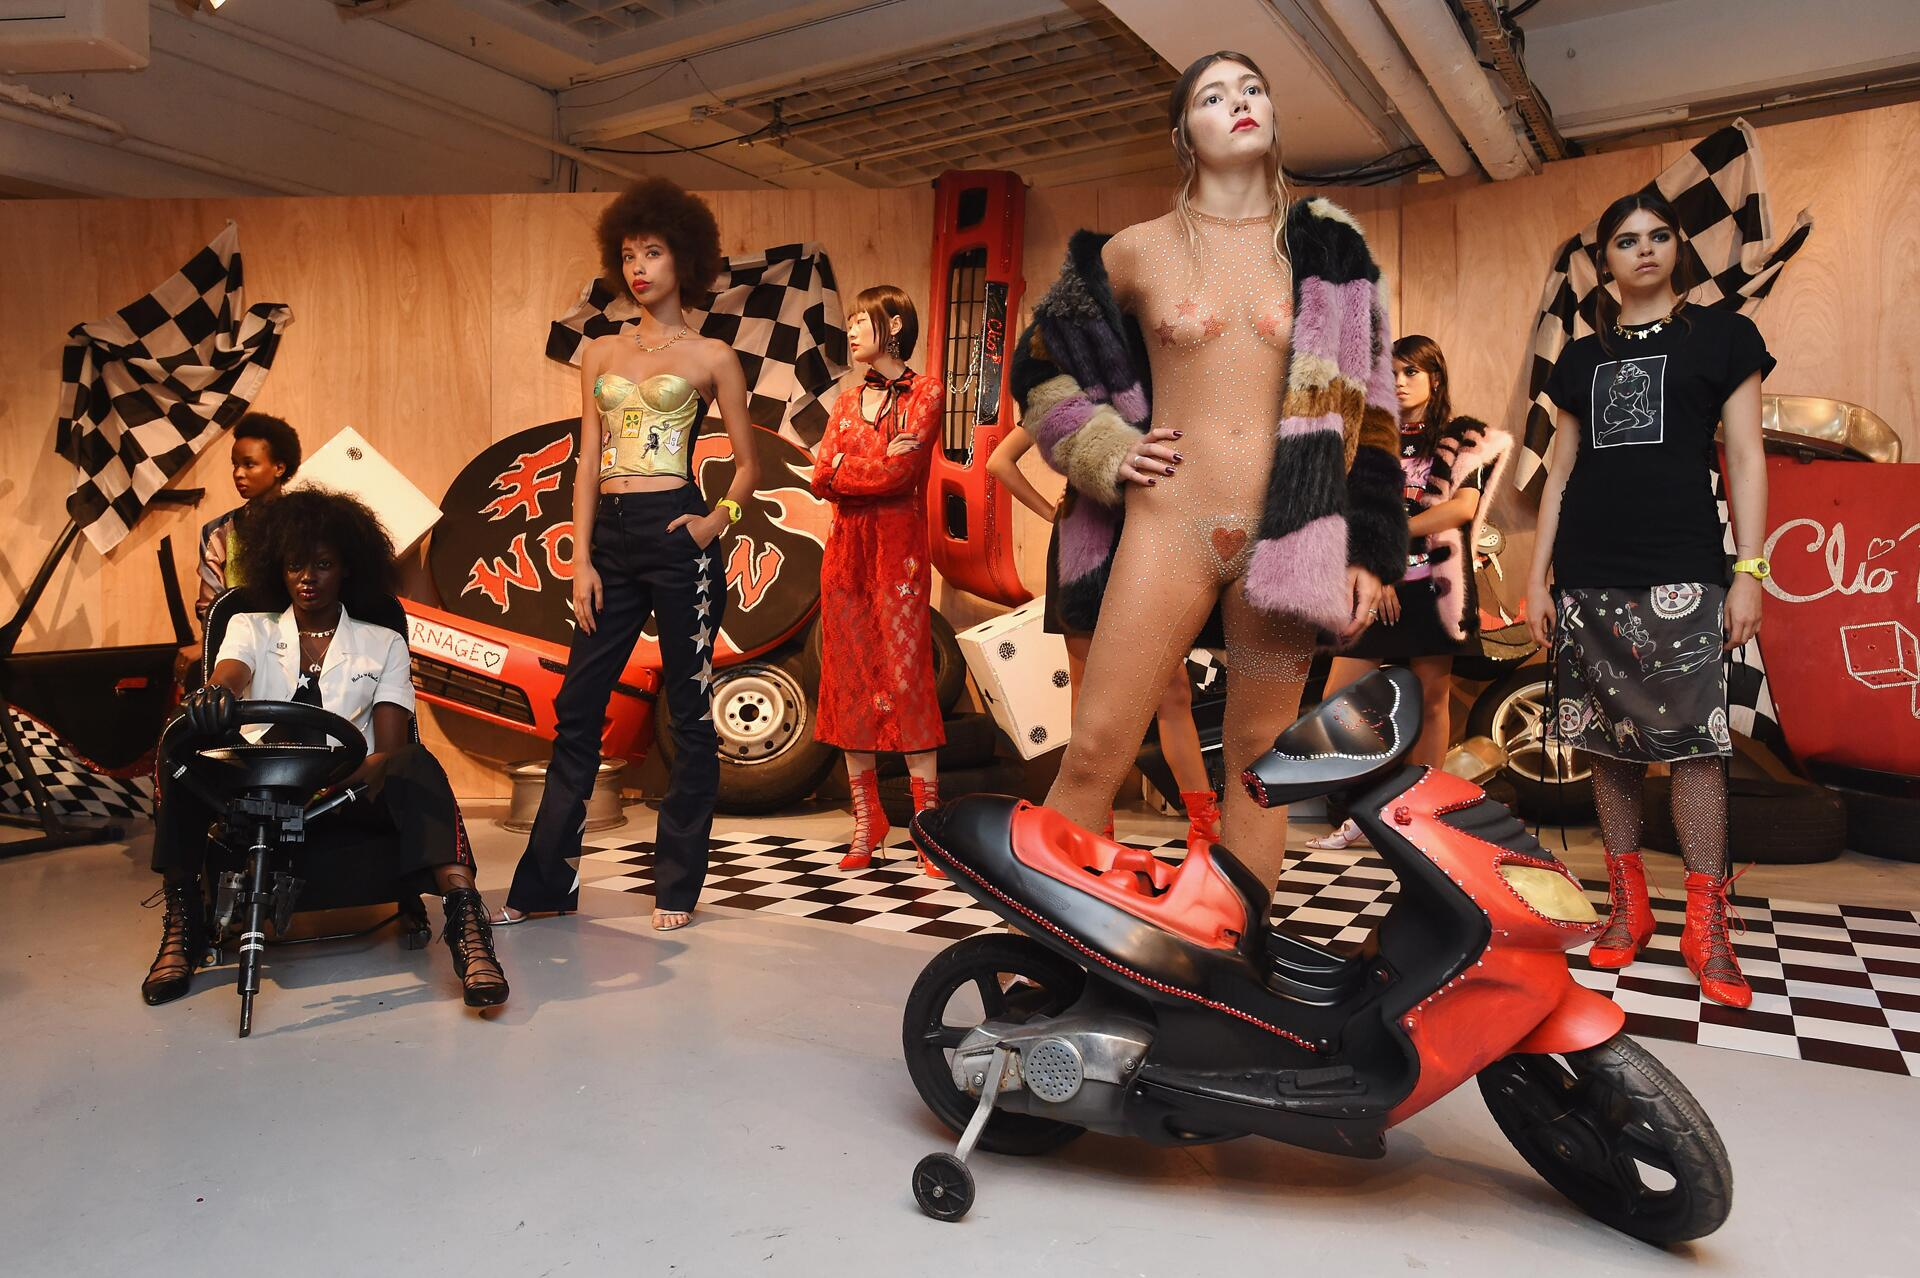 Bild zu Clio Peppiatt, London Fashion Week 2016